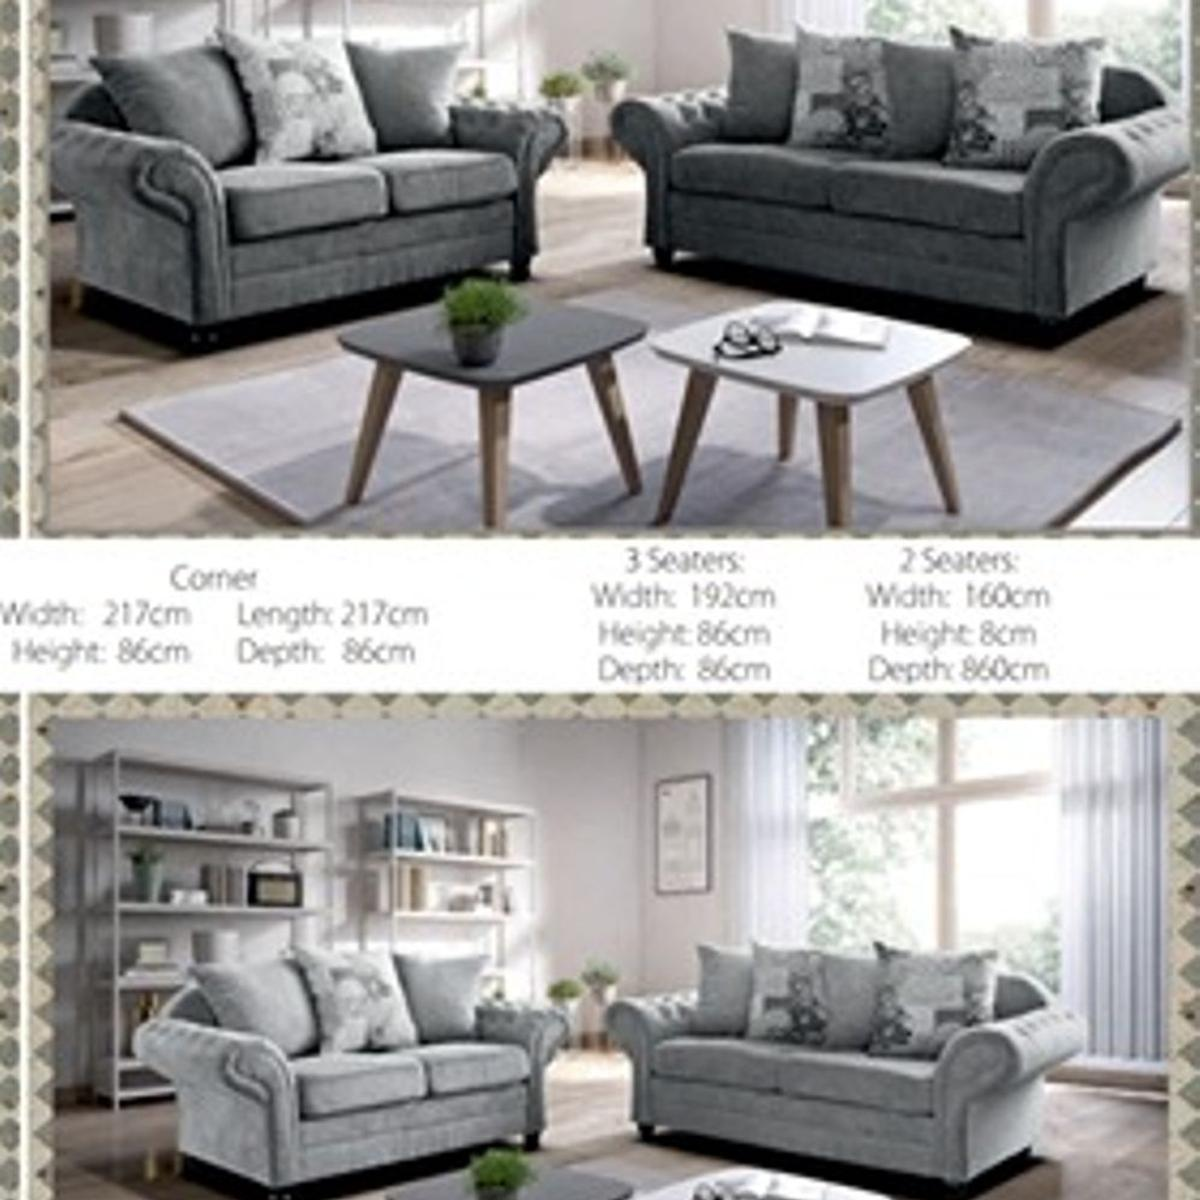 📞Call Us Now 02033711141📞  HAWAII CORNER SOFA Hawaii Sofa is an elegant sofa that will bring a romantic atmosphere inside. It is designed in a modern style, with subtle decorative elements. It will perfectly fit almost any style of arrangement.  Corner Width: 217 cm Length: 217 cm Height: 86 cm Depth: 86 cm  HAWAI 2+3 seater  Hawaii 3+2 Seater Sofa is an elegant sofa that will bring a romantic atmosphere inside. It is designed in a modern style, with subtle decorative elements. It will perfectly fit almost any style of arrangement. HAWAII 3+2 SOFA  Dimention:  3 Seaters: Width: 192cm Height:86cm Depth:86cm  2 Seaters: Width: 160cm Height:8cm Depth:860cm  100% SECURE PAYMENT  QUALITY ASSURANCE  Payment Mode : Cash On Delivery 🚛🚛  Same/Next Day Delivery 🚛  📞Call Us Now 02033711141📞